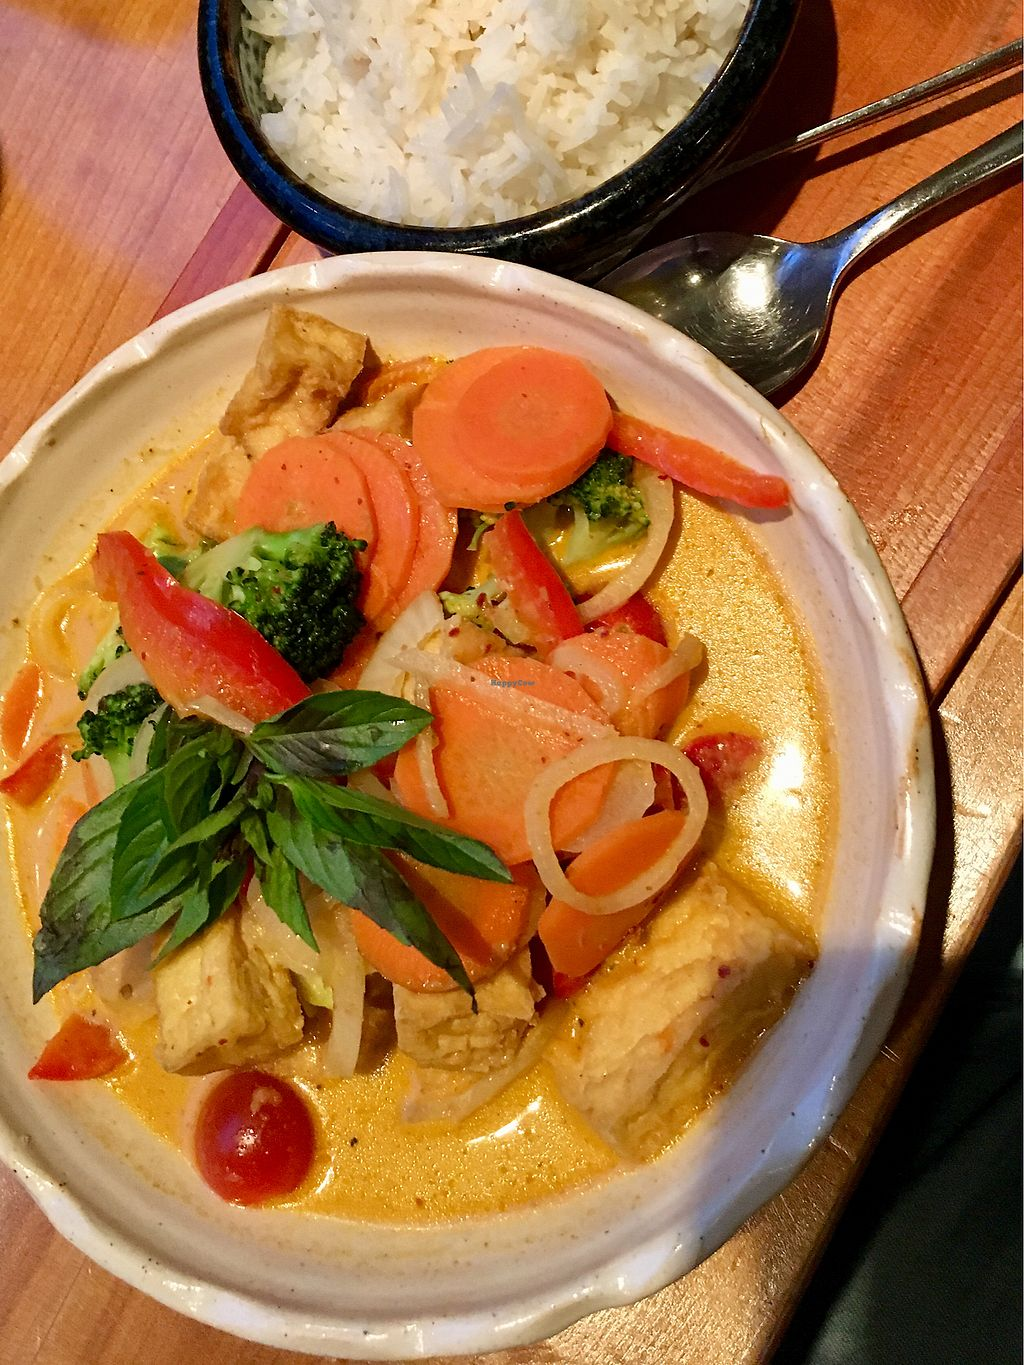 "Photo of Vi Pho  by <a href=""/members/profile/Djtofu"">Djtofu</a> <br/>Red curry tofu  <br/> April 10, 2018  - <a href='/contact/abuse/image/79238/383468'>Report</a>"